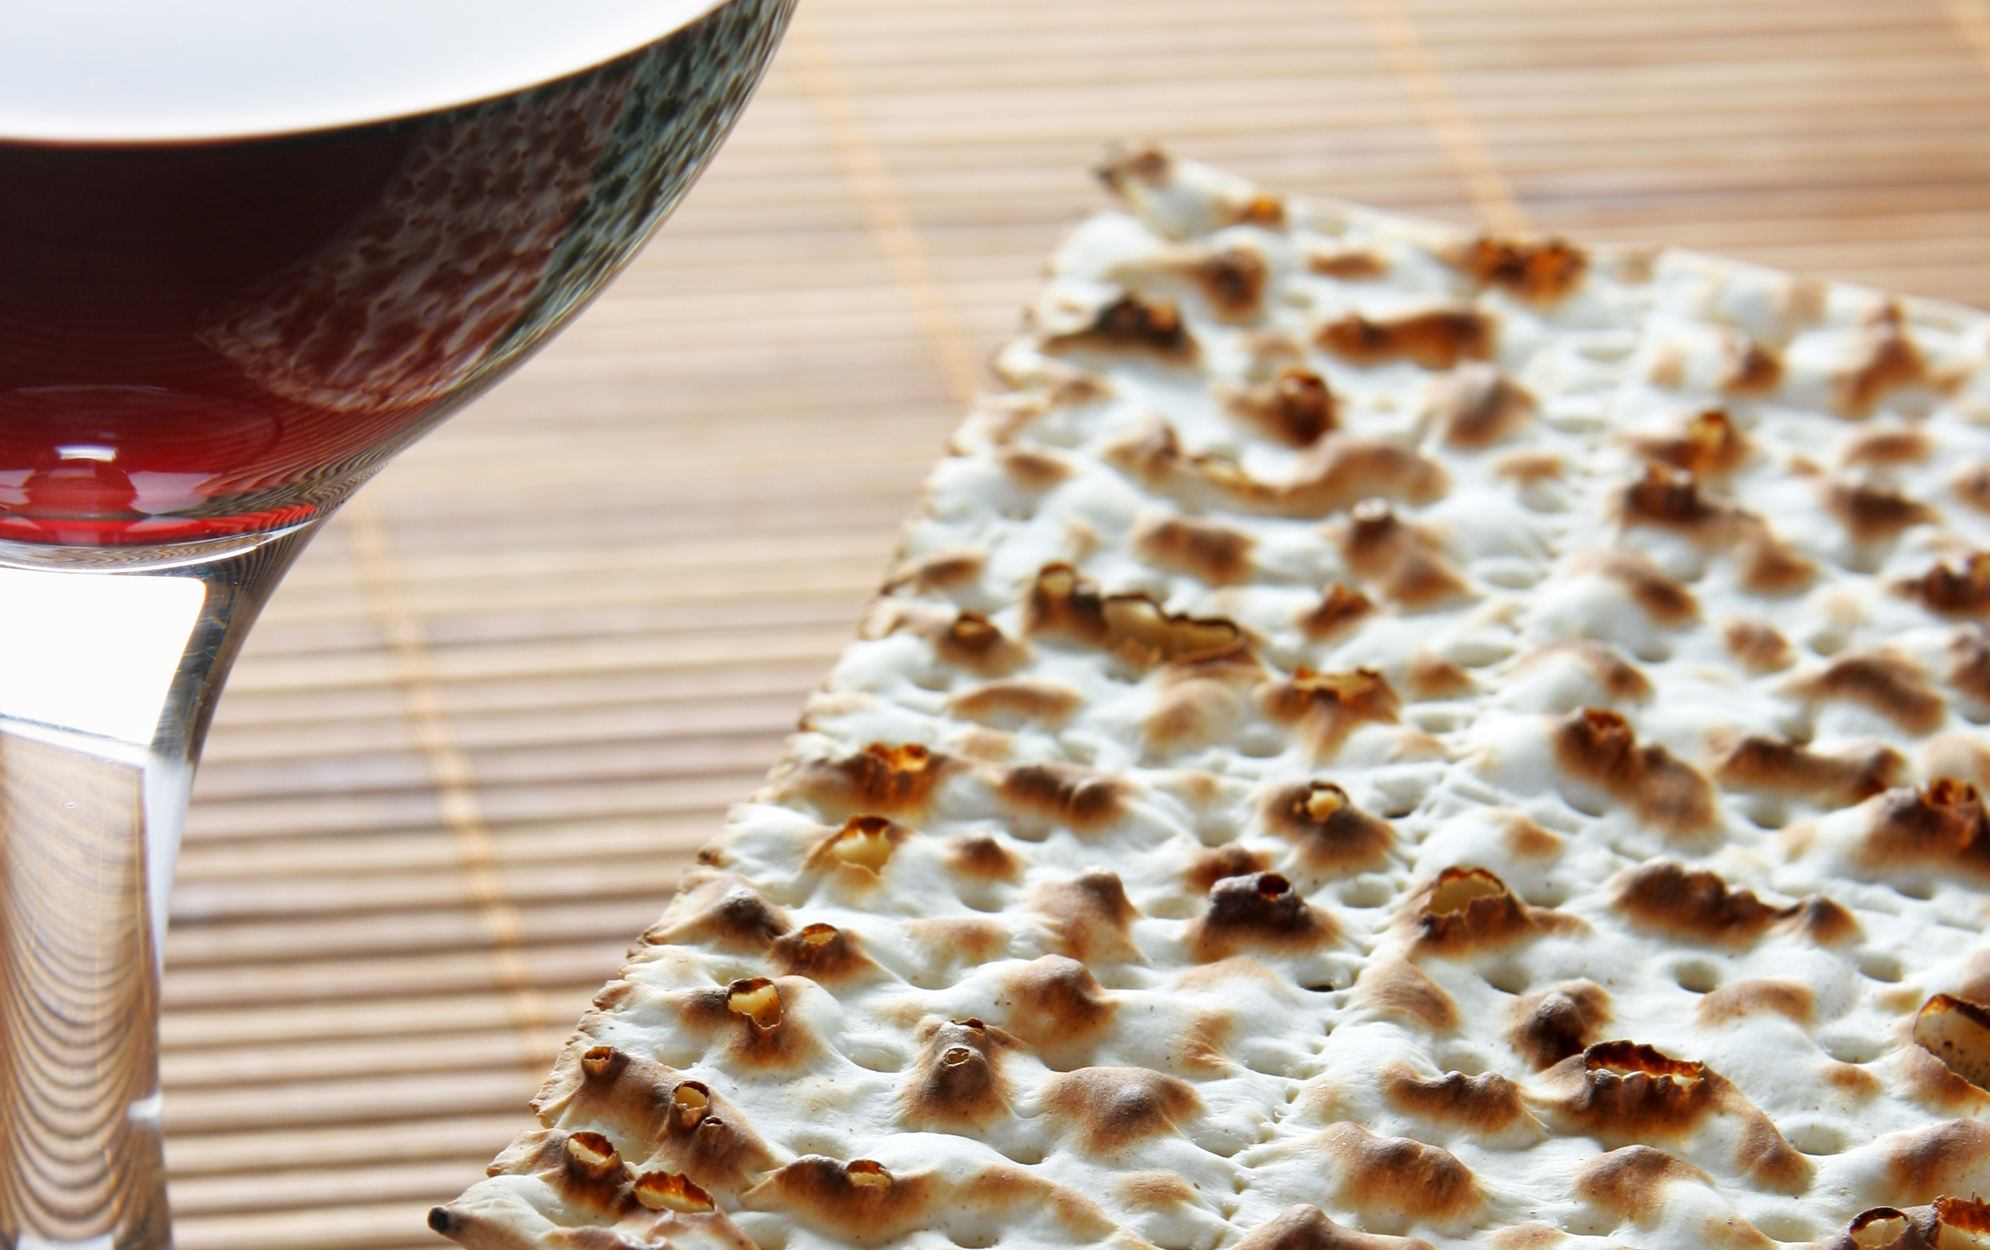 the passover bread and wine: the meaning of the passover symbols